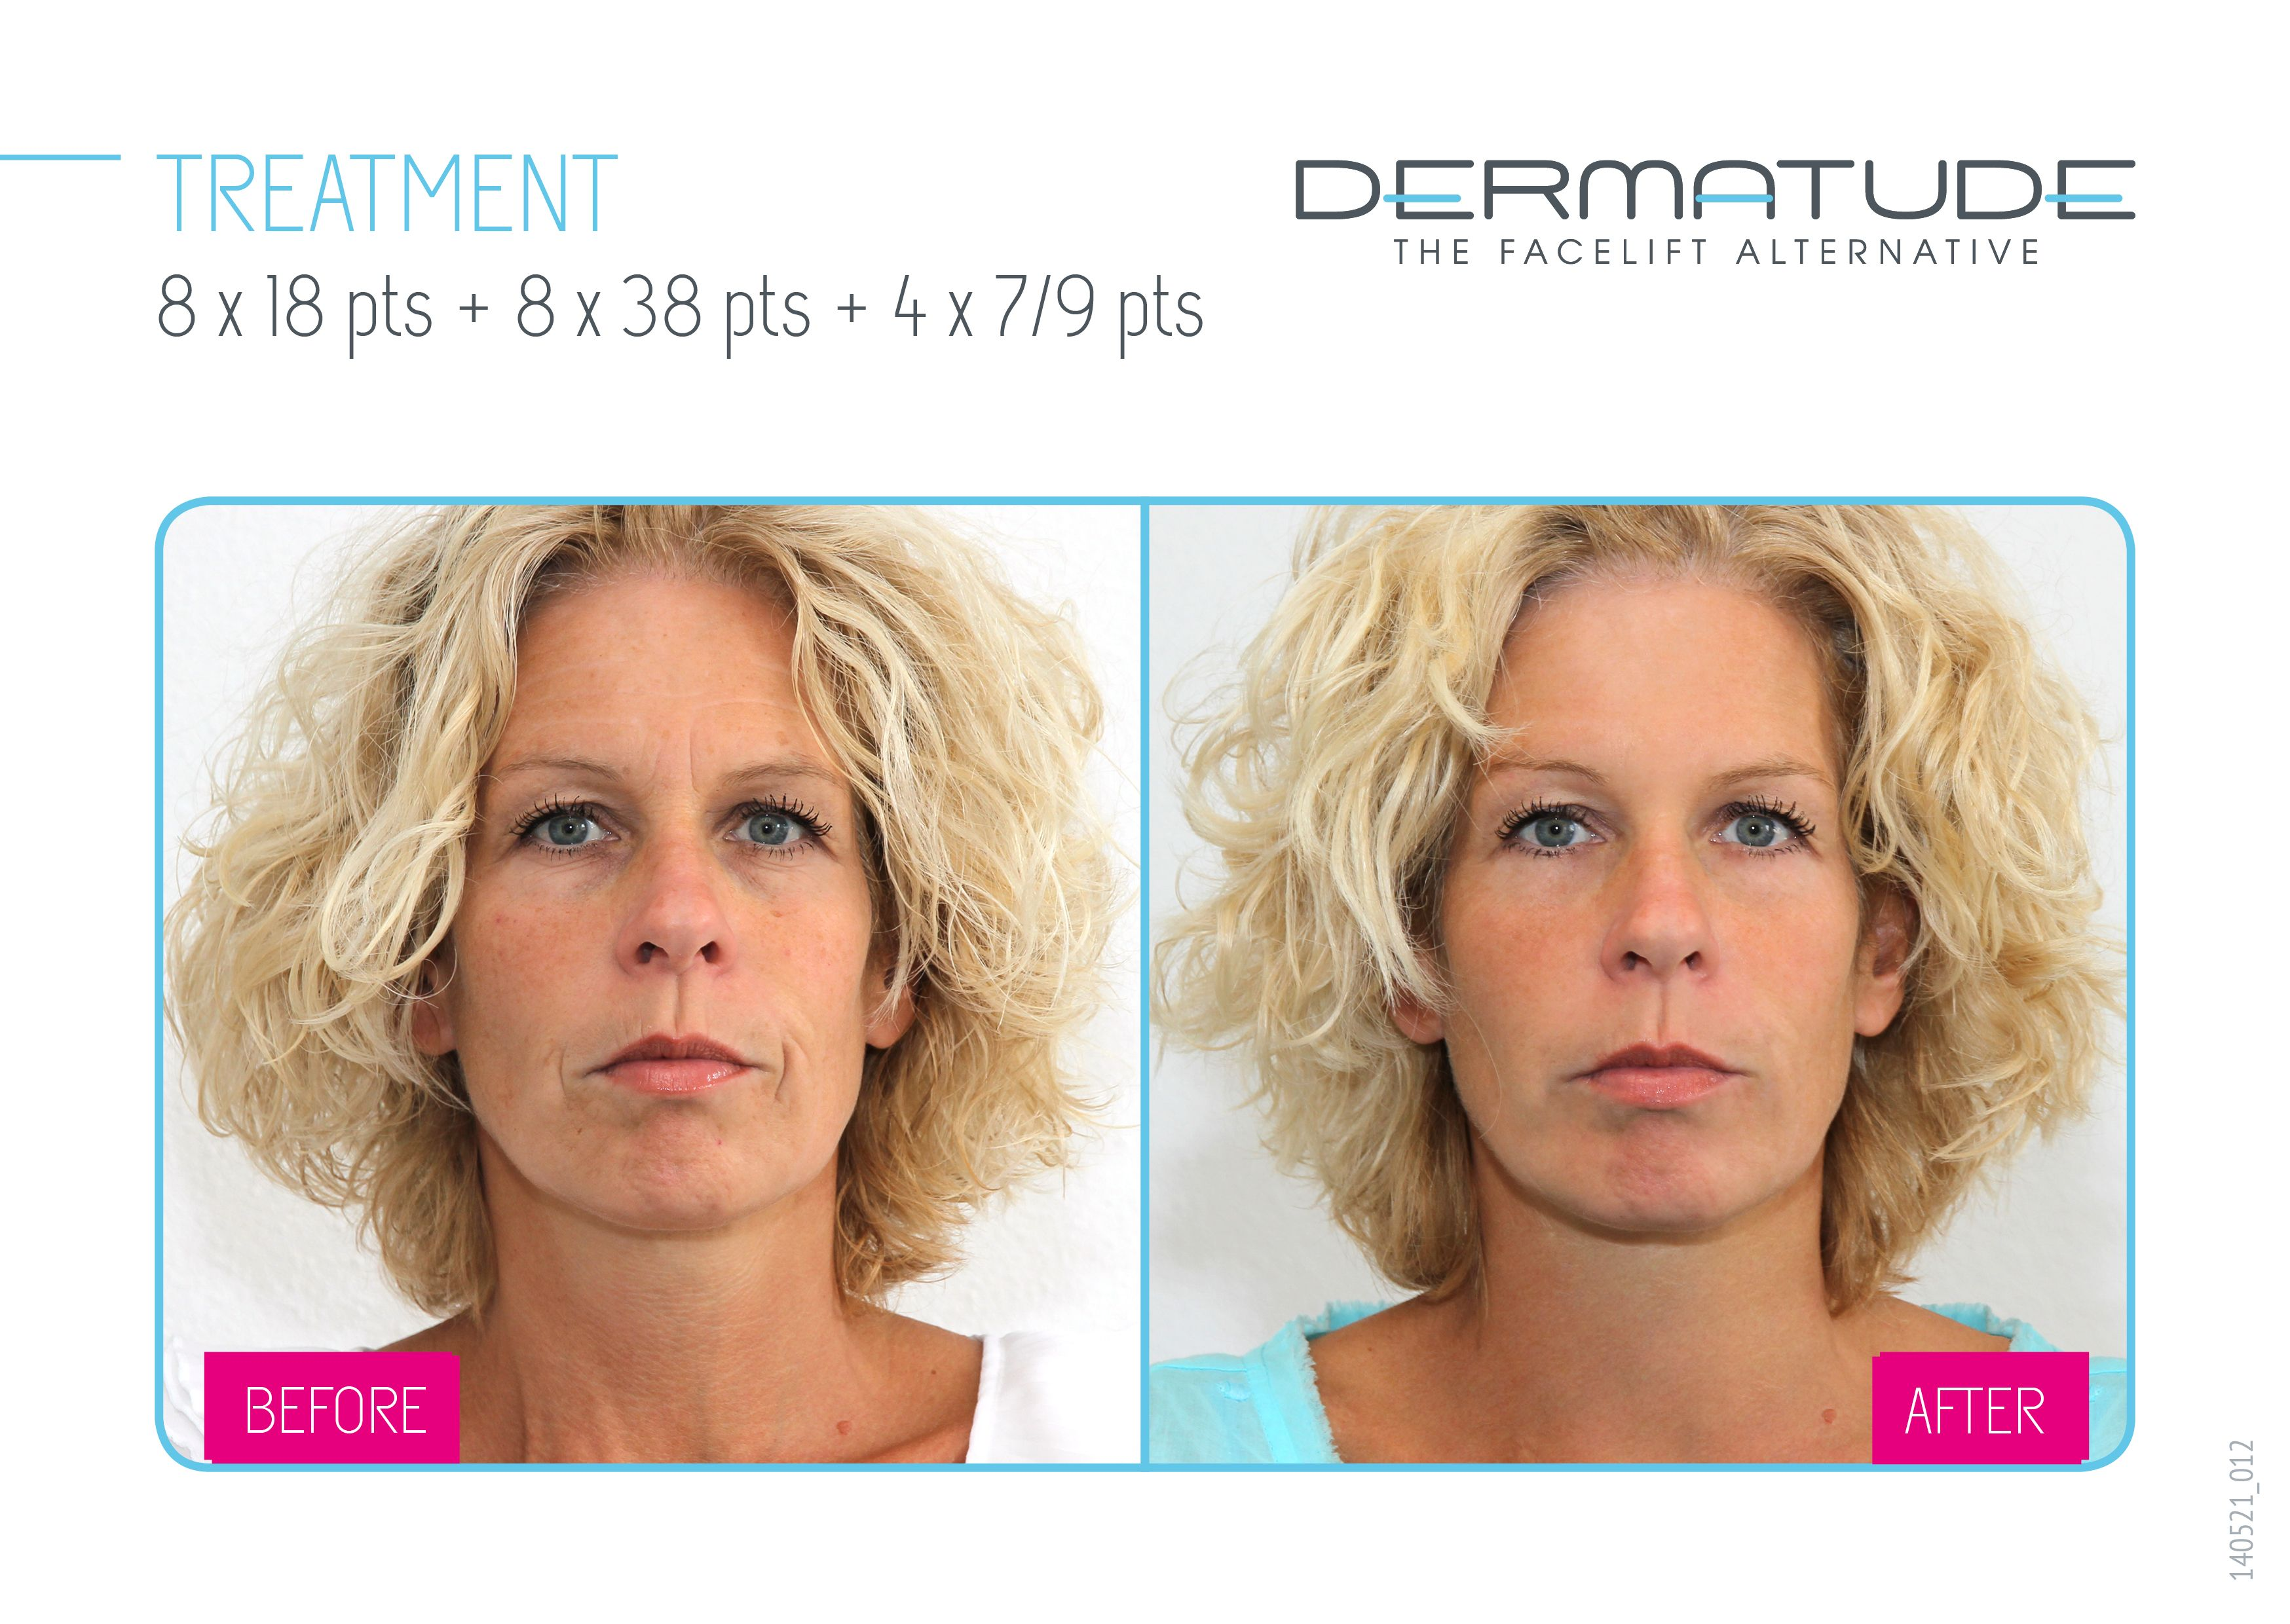 Before And After Facial Front Dermatude Anti Aging Treatments